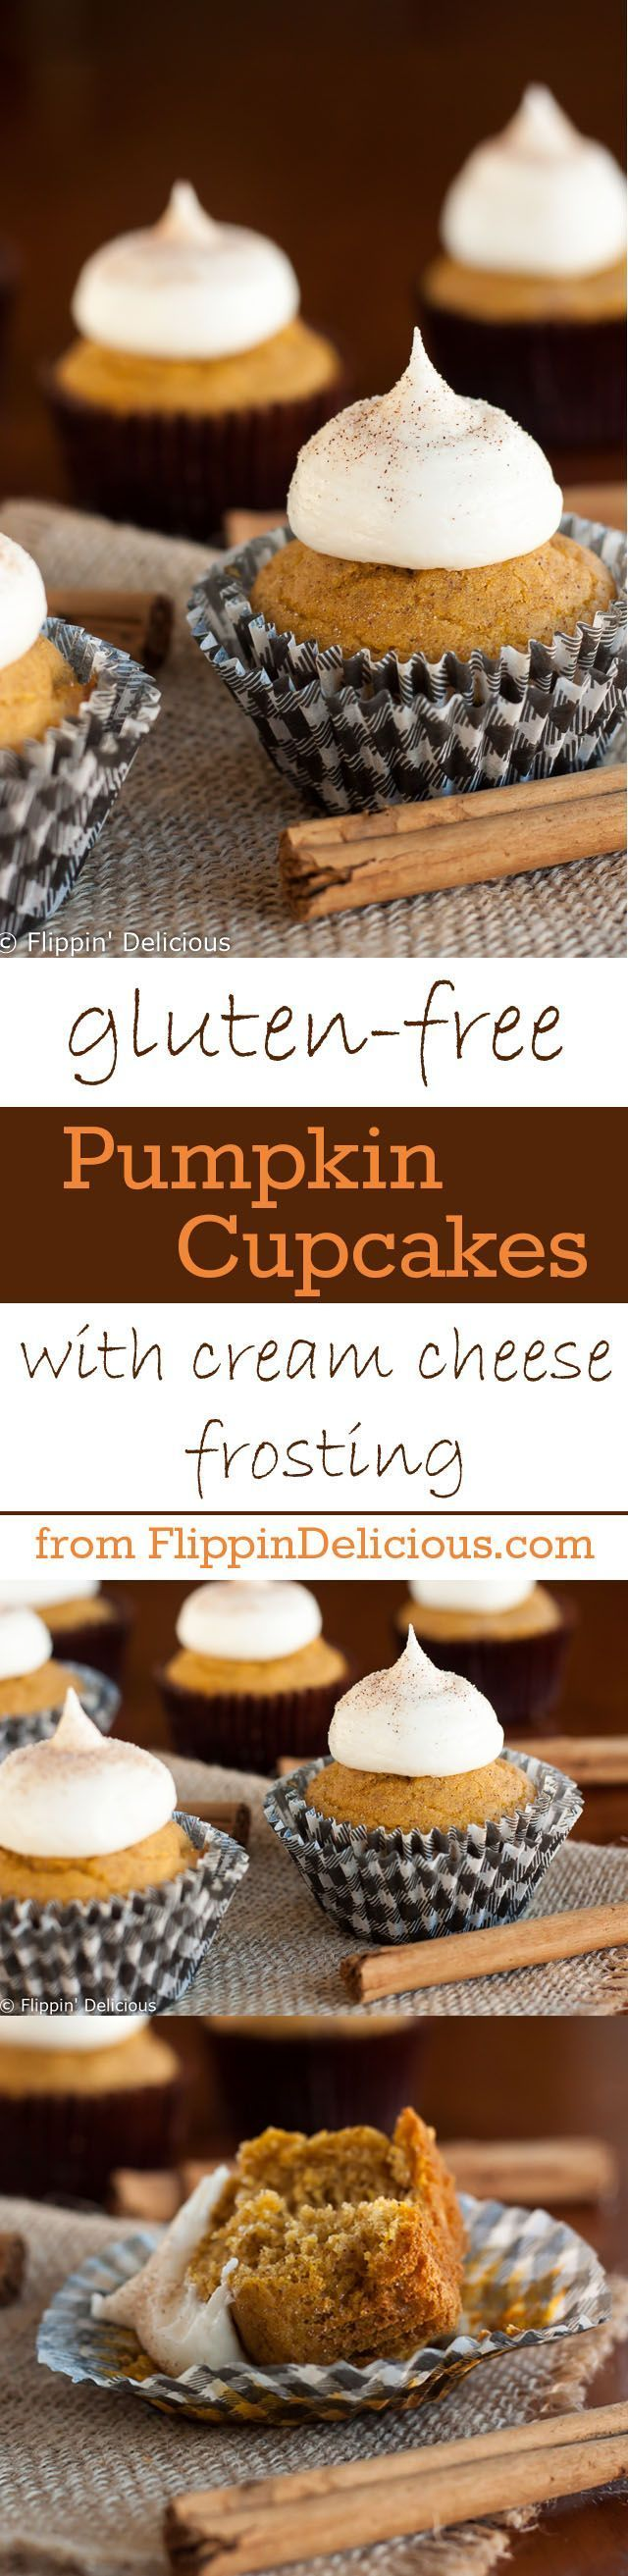 Gluten Free Pumpkin Cupcakes with Cream Cheese Frosting